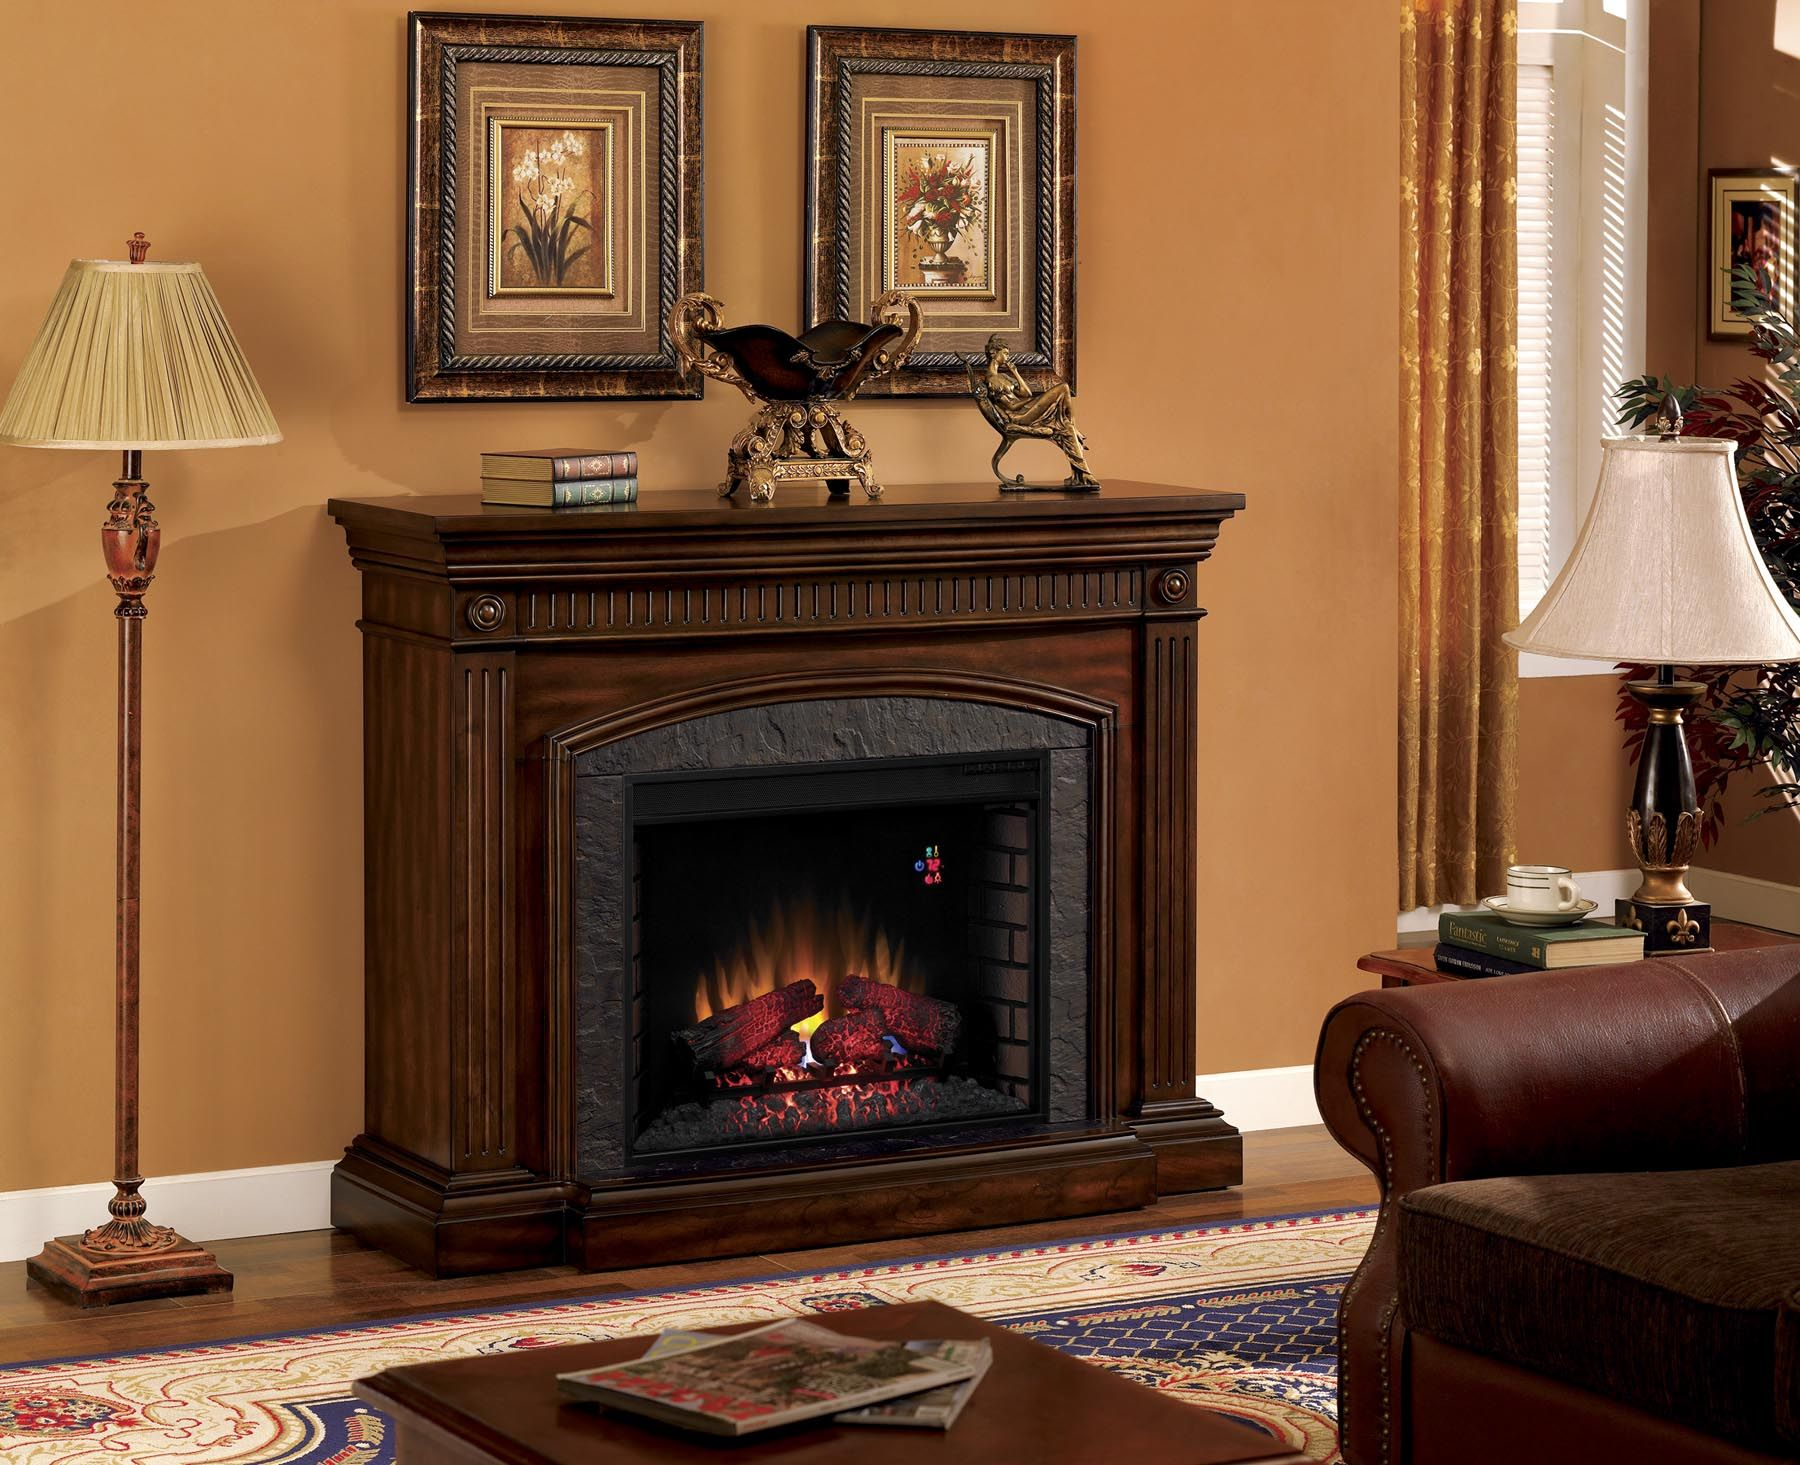 Fireplace amp tv stand in premium cherry finish with 23ef025gra electric - Fireplace Mantels Surrounds Los Angeles Orange County Ventura County